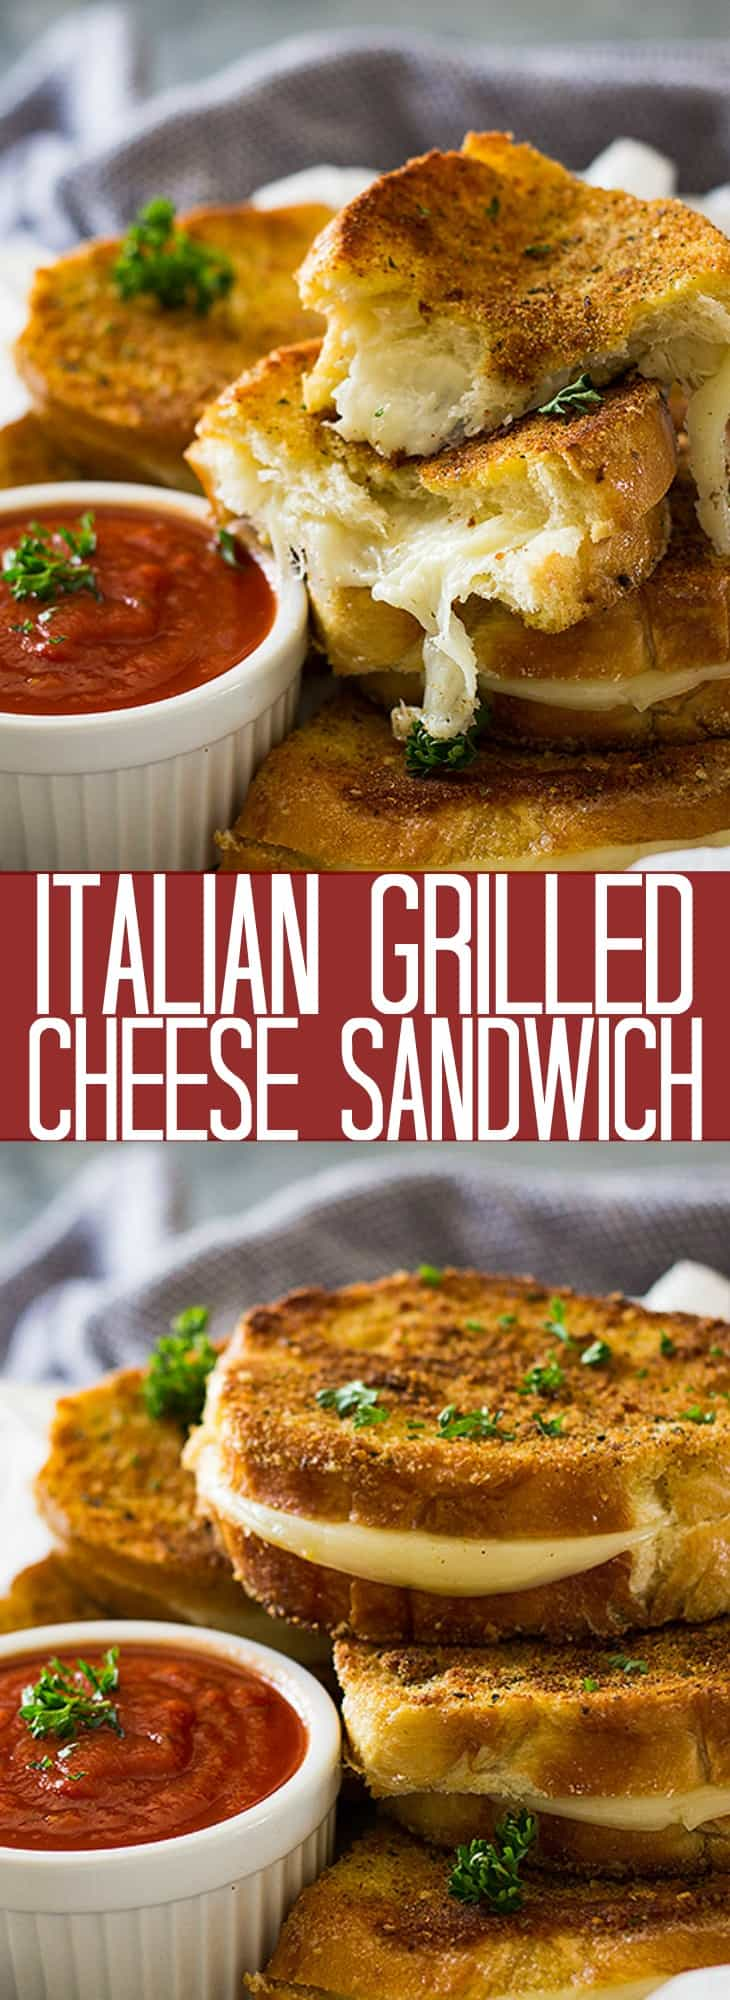 This Italian Grilled Cheese Sandwich is the perfect quick and easy meal! It's filled with ooey, gooey Provolone cheese sandwiched between a golden crispy crust!